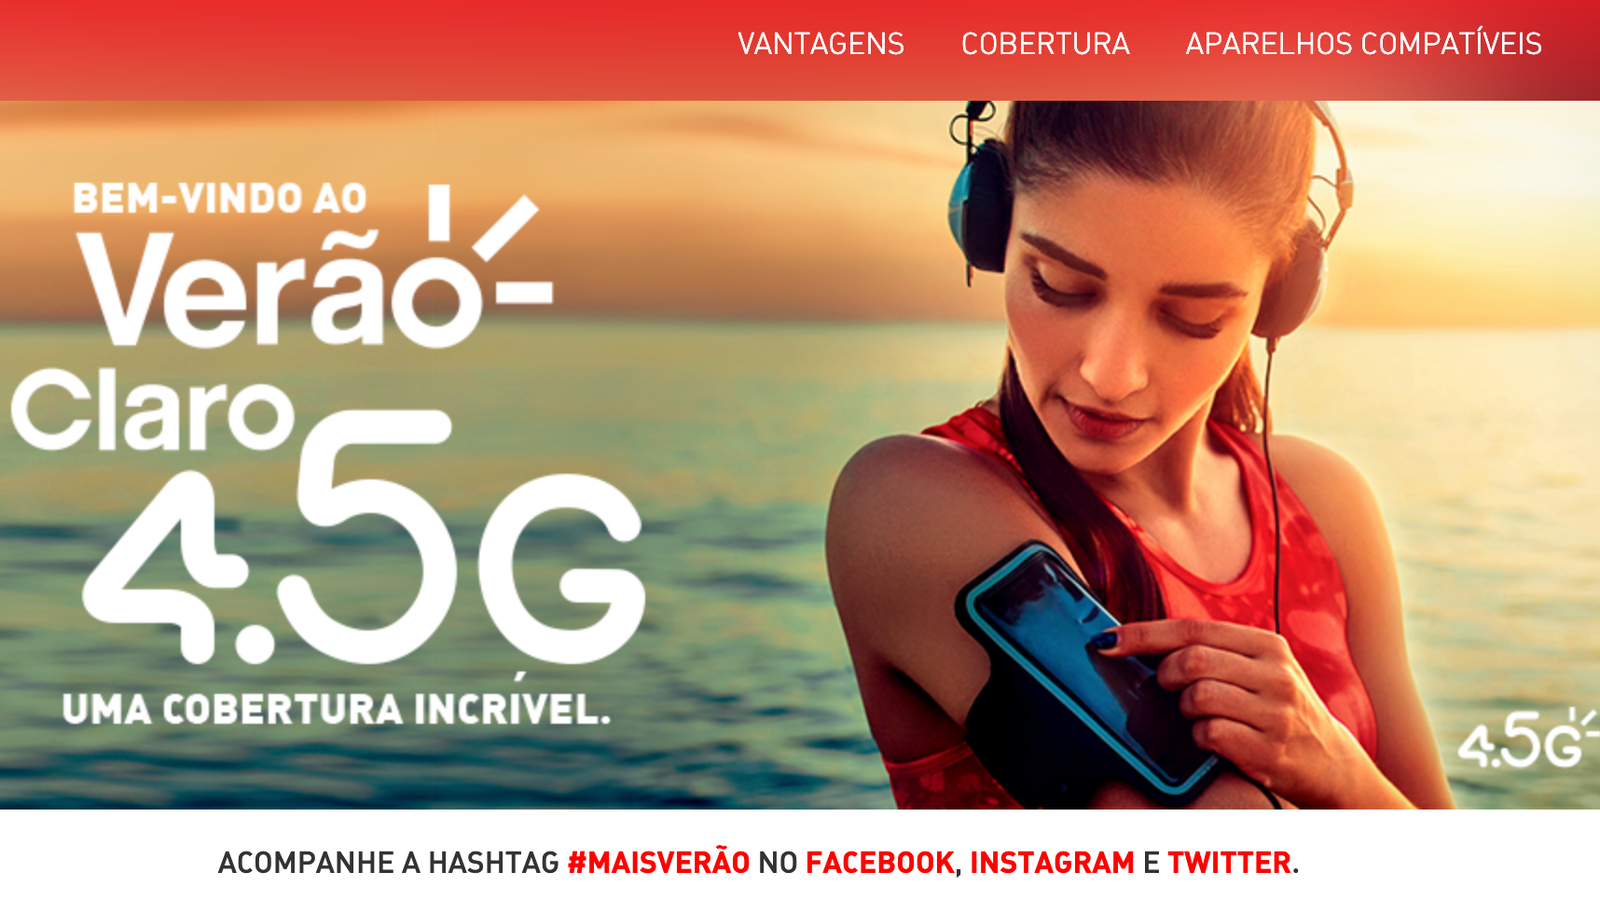 QnA VBage Brazilian Carrier Comes Up With Tricksy '4.5G' Logo—and Now It Might Get Fined